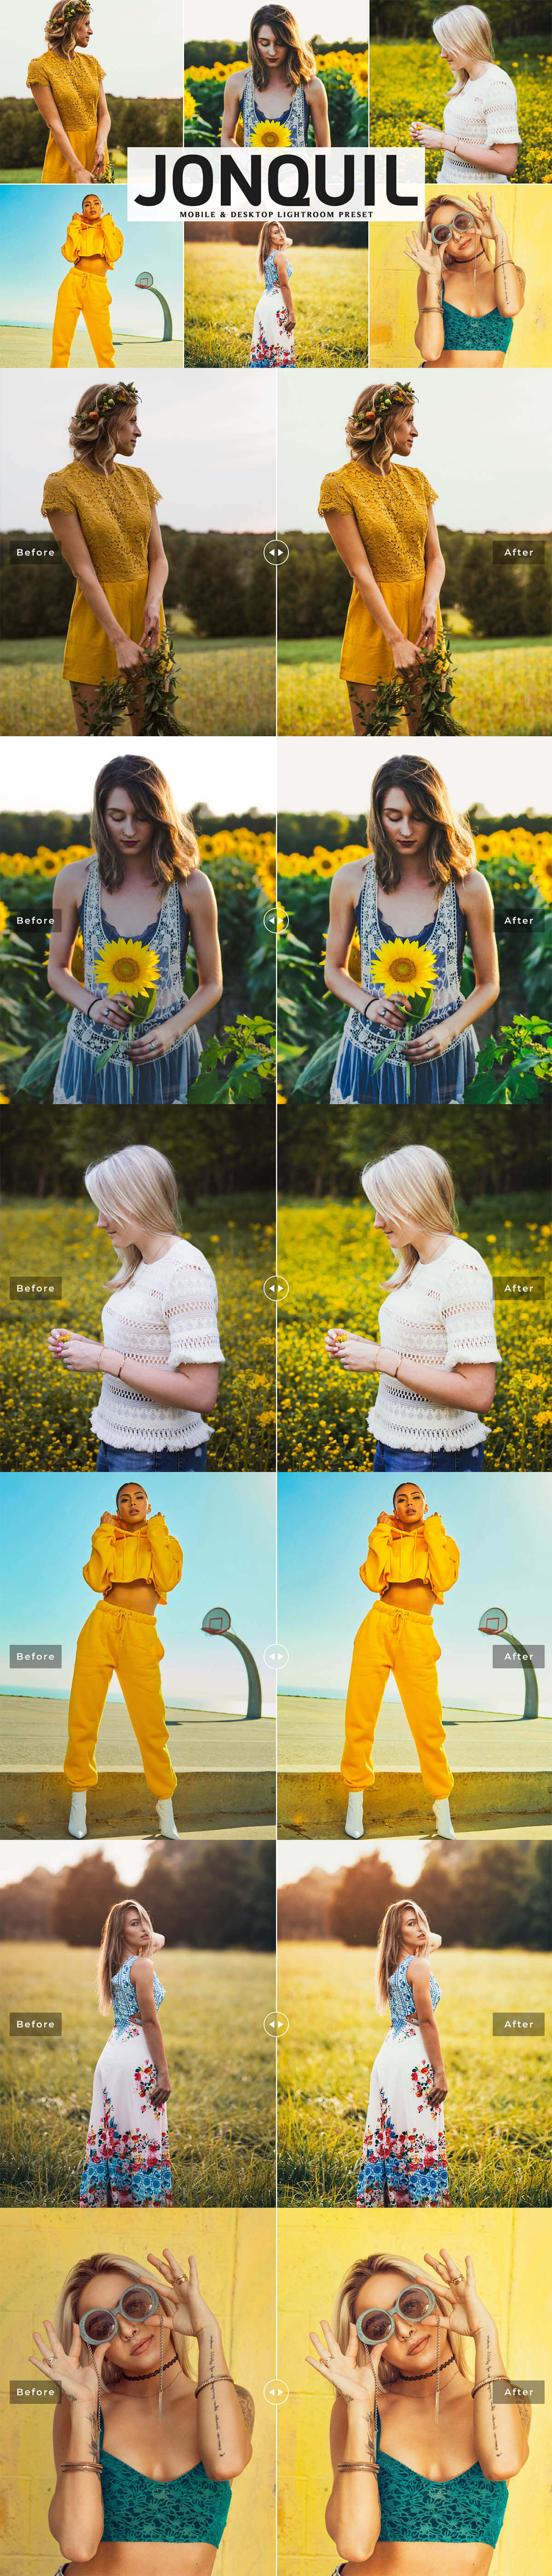 Free Jonquil Lightroom Preset